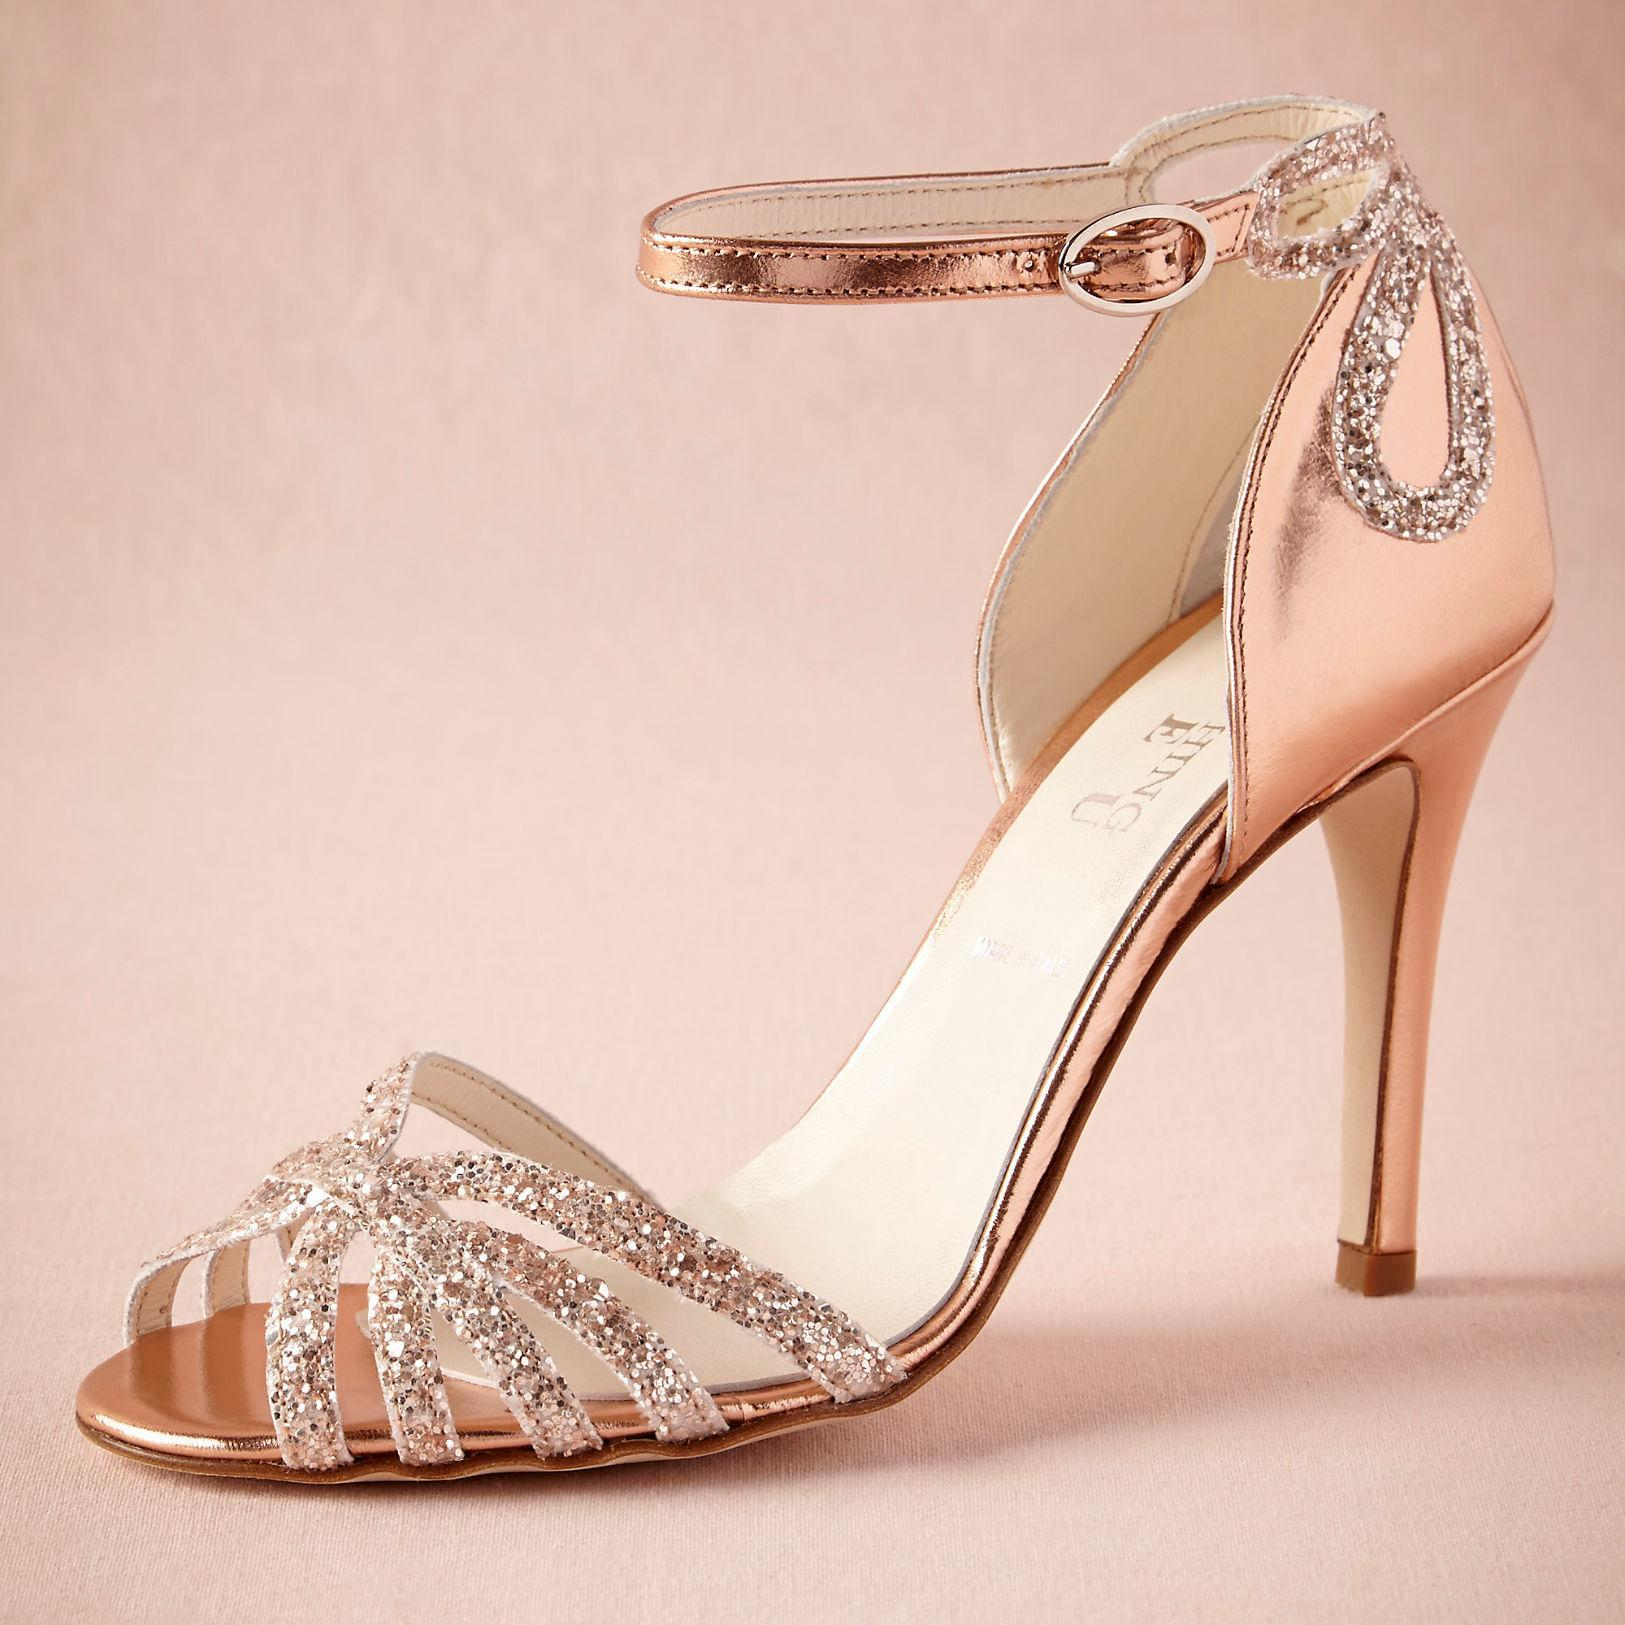 Women's Ankle Strap Sequins Glitter High Heels Sandals Party Evening Work Dress Shoes